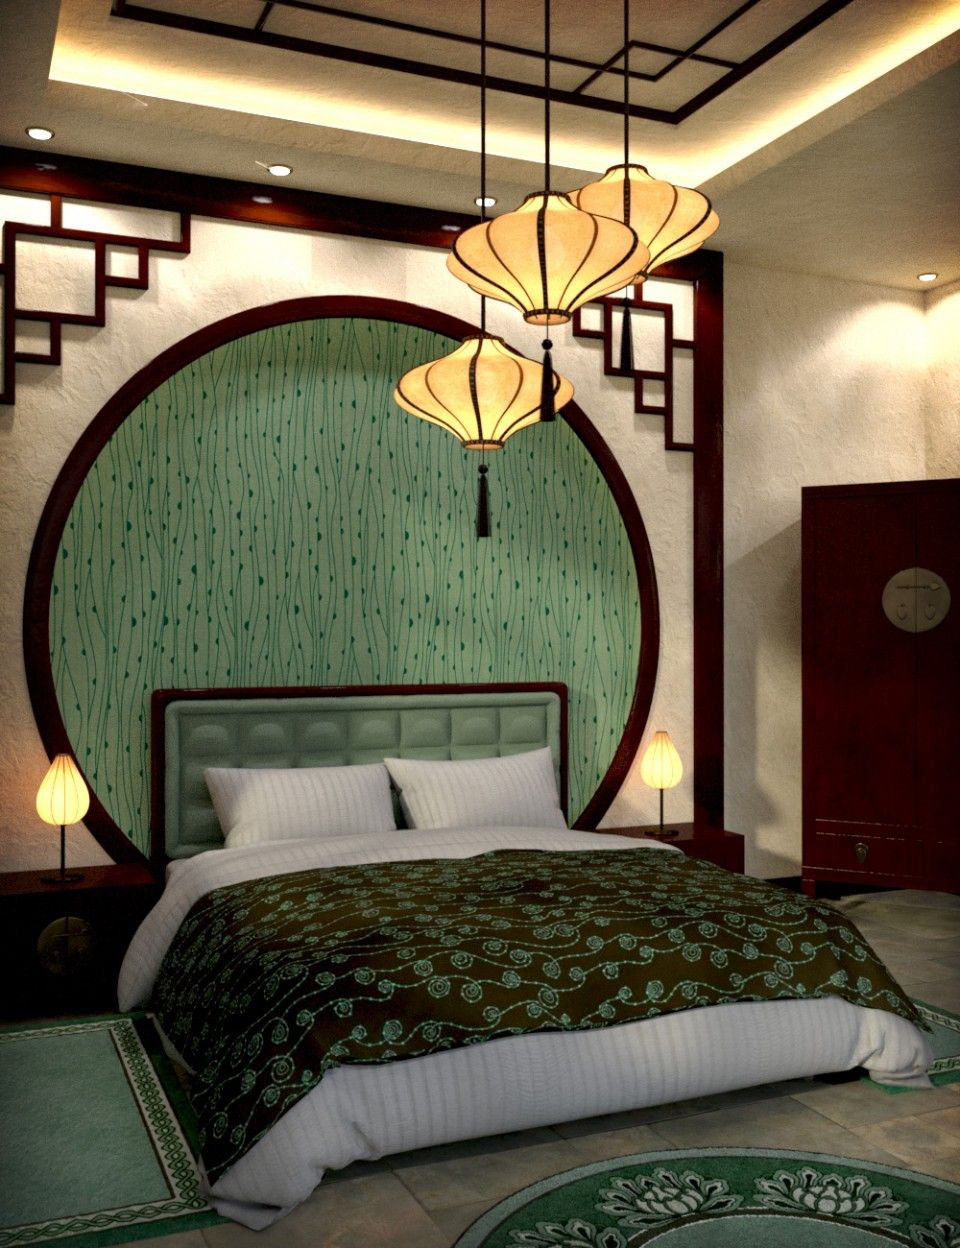 modern chinese bedroom with images asian interior on home interior design bedroom id=77348